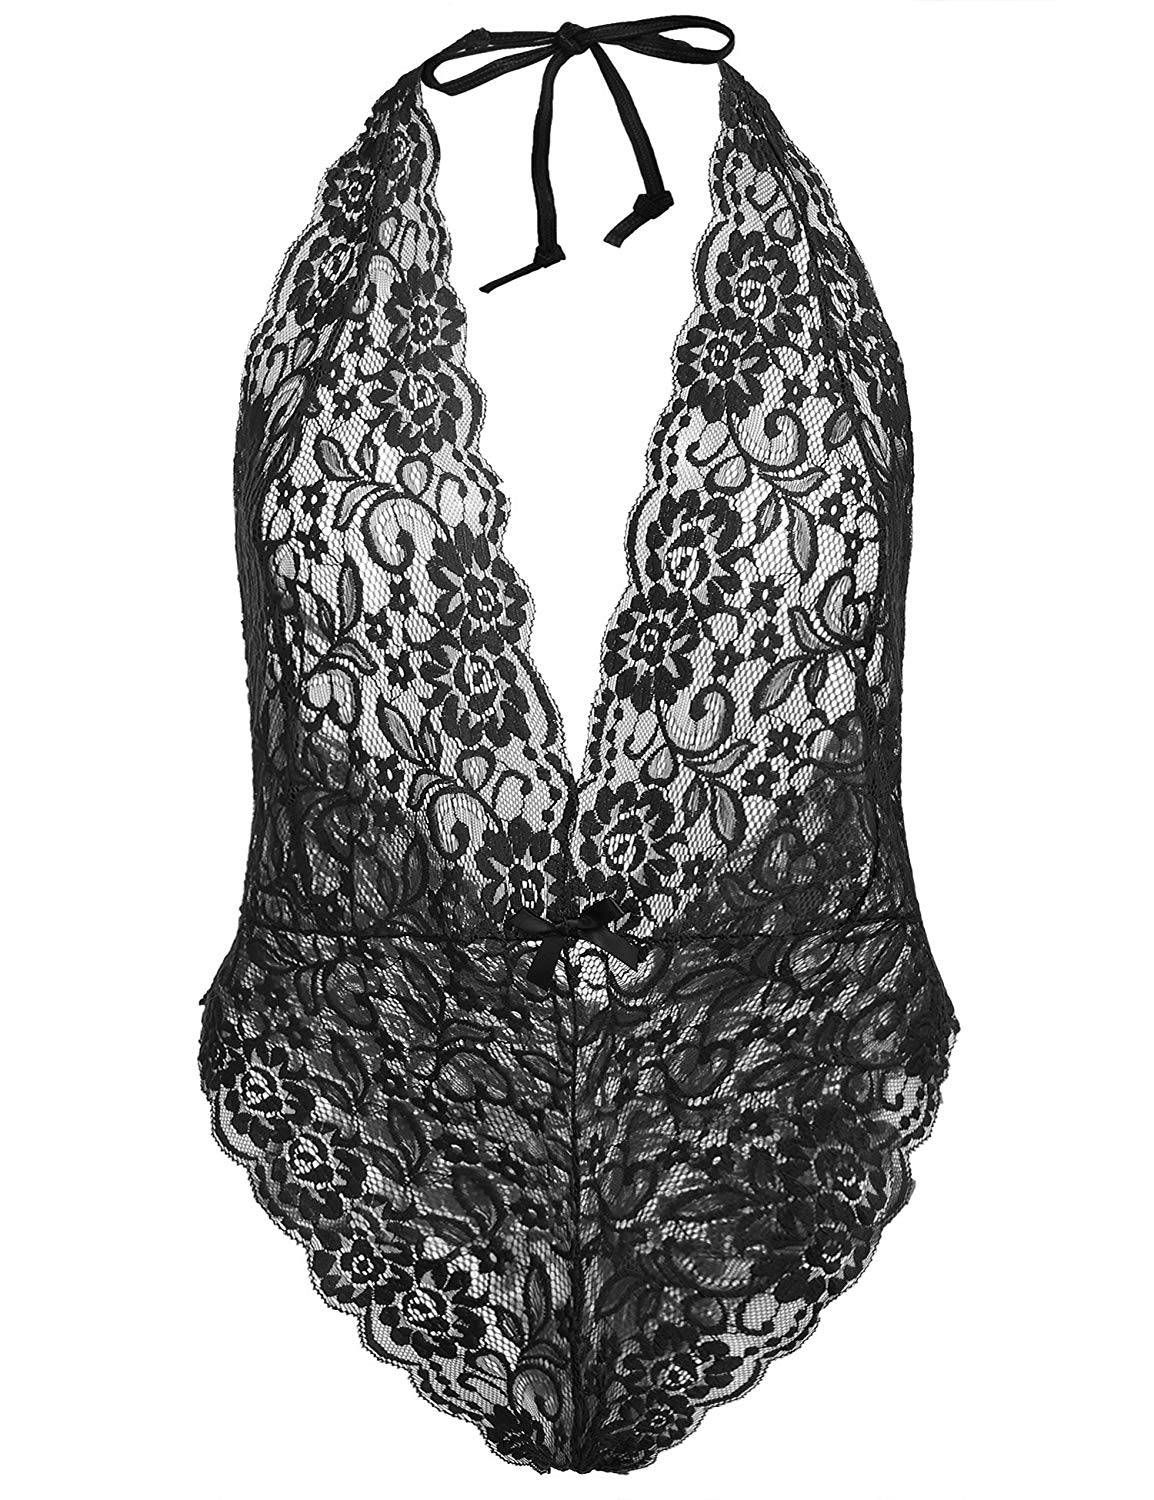 5ff58cf1a03c2 3 Lingerie Trends You Can Buy on Amazon for Less Than $20 in 2019 ...